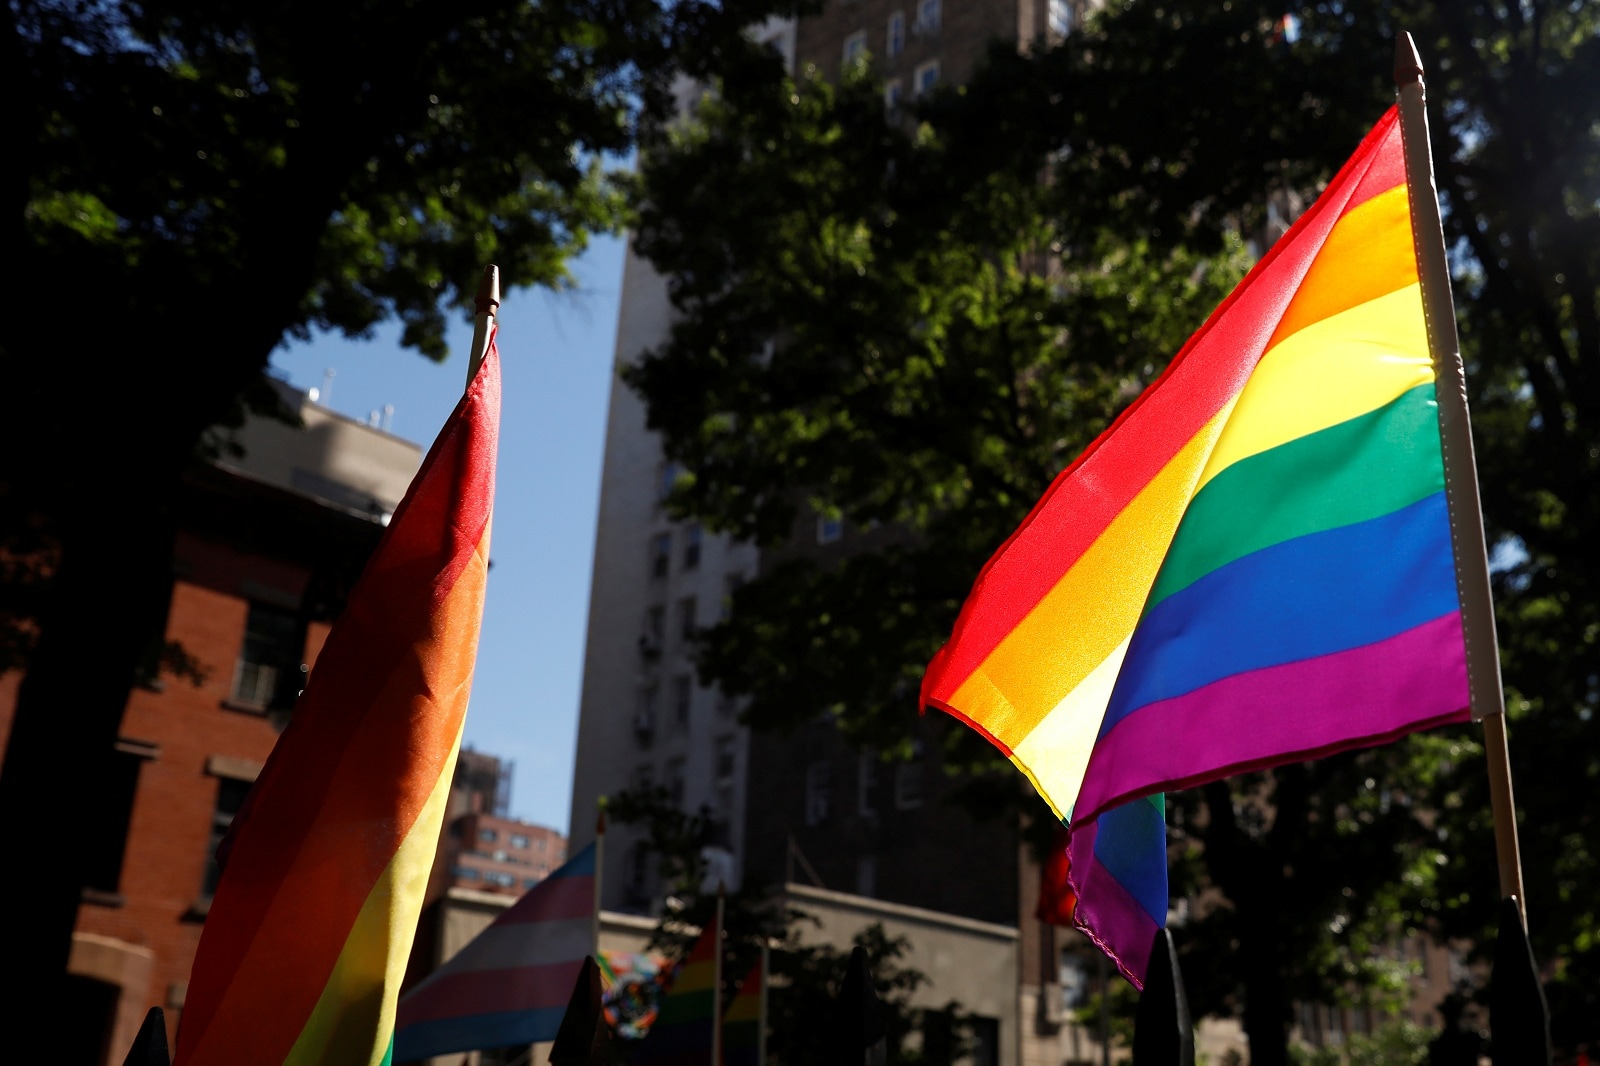 A rainbow flag, commonly known as the gay pride flag or LGBT pride flag, blows in the wind inside Christopher Park outside the Stonewall Inn in New York, US, June 27, 2019. REUTERS/Shannon Stapleton